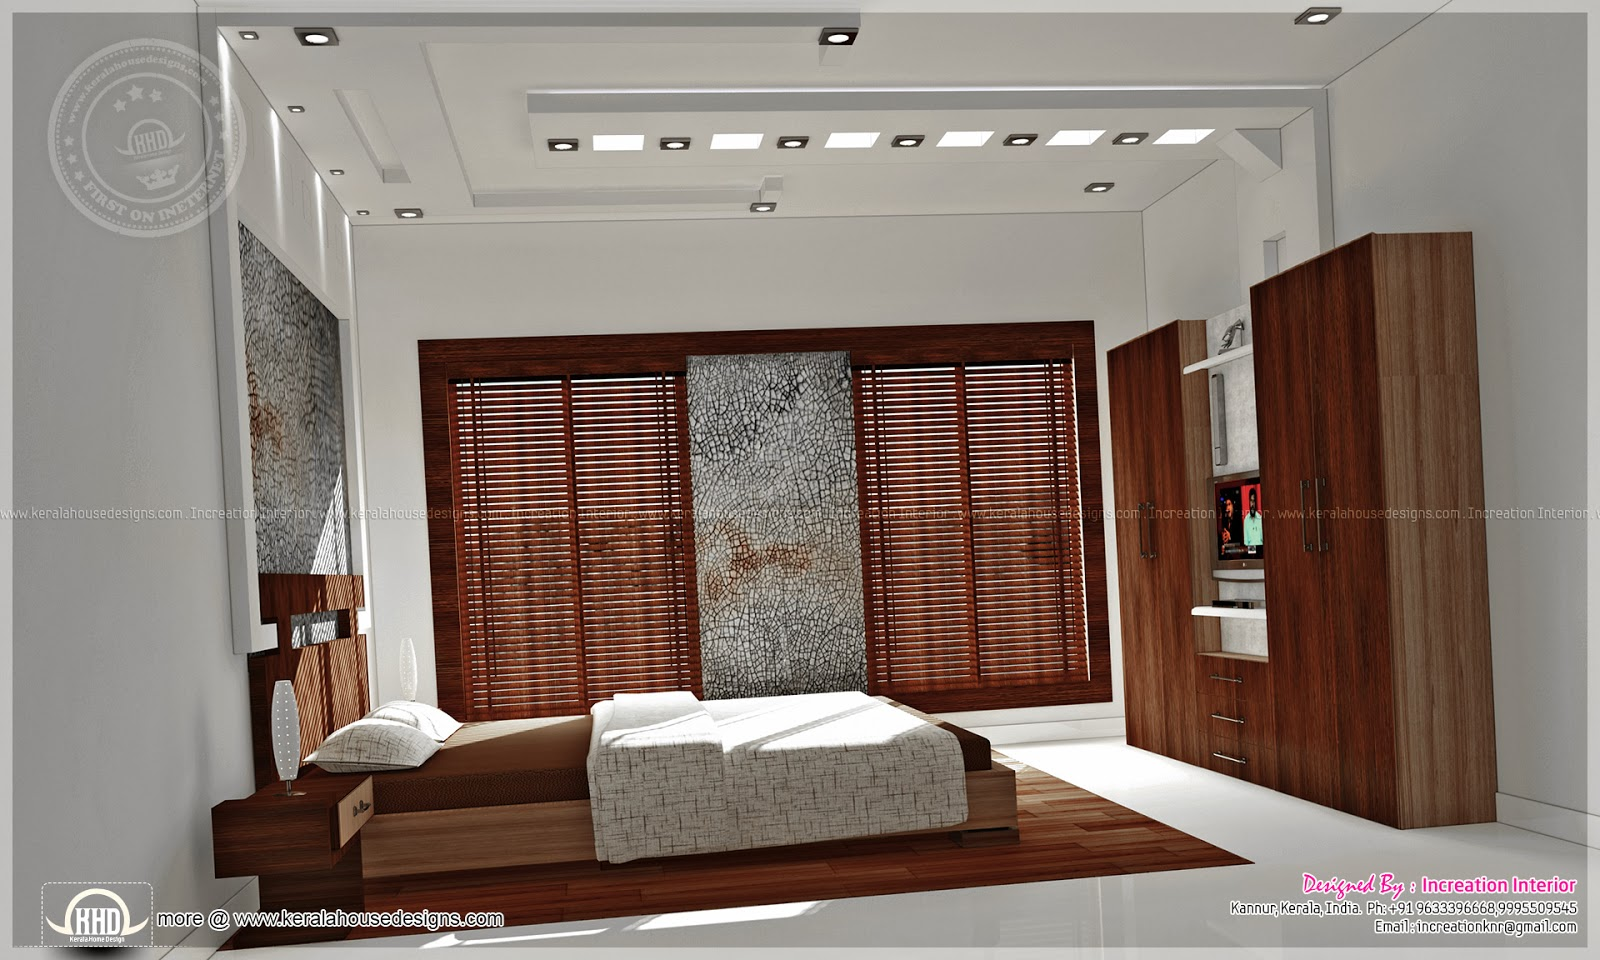 Bedroom interior designs kerala home design and floor plans for Kerala interior designs